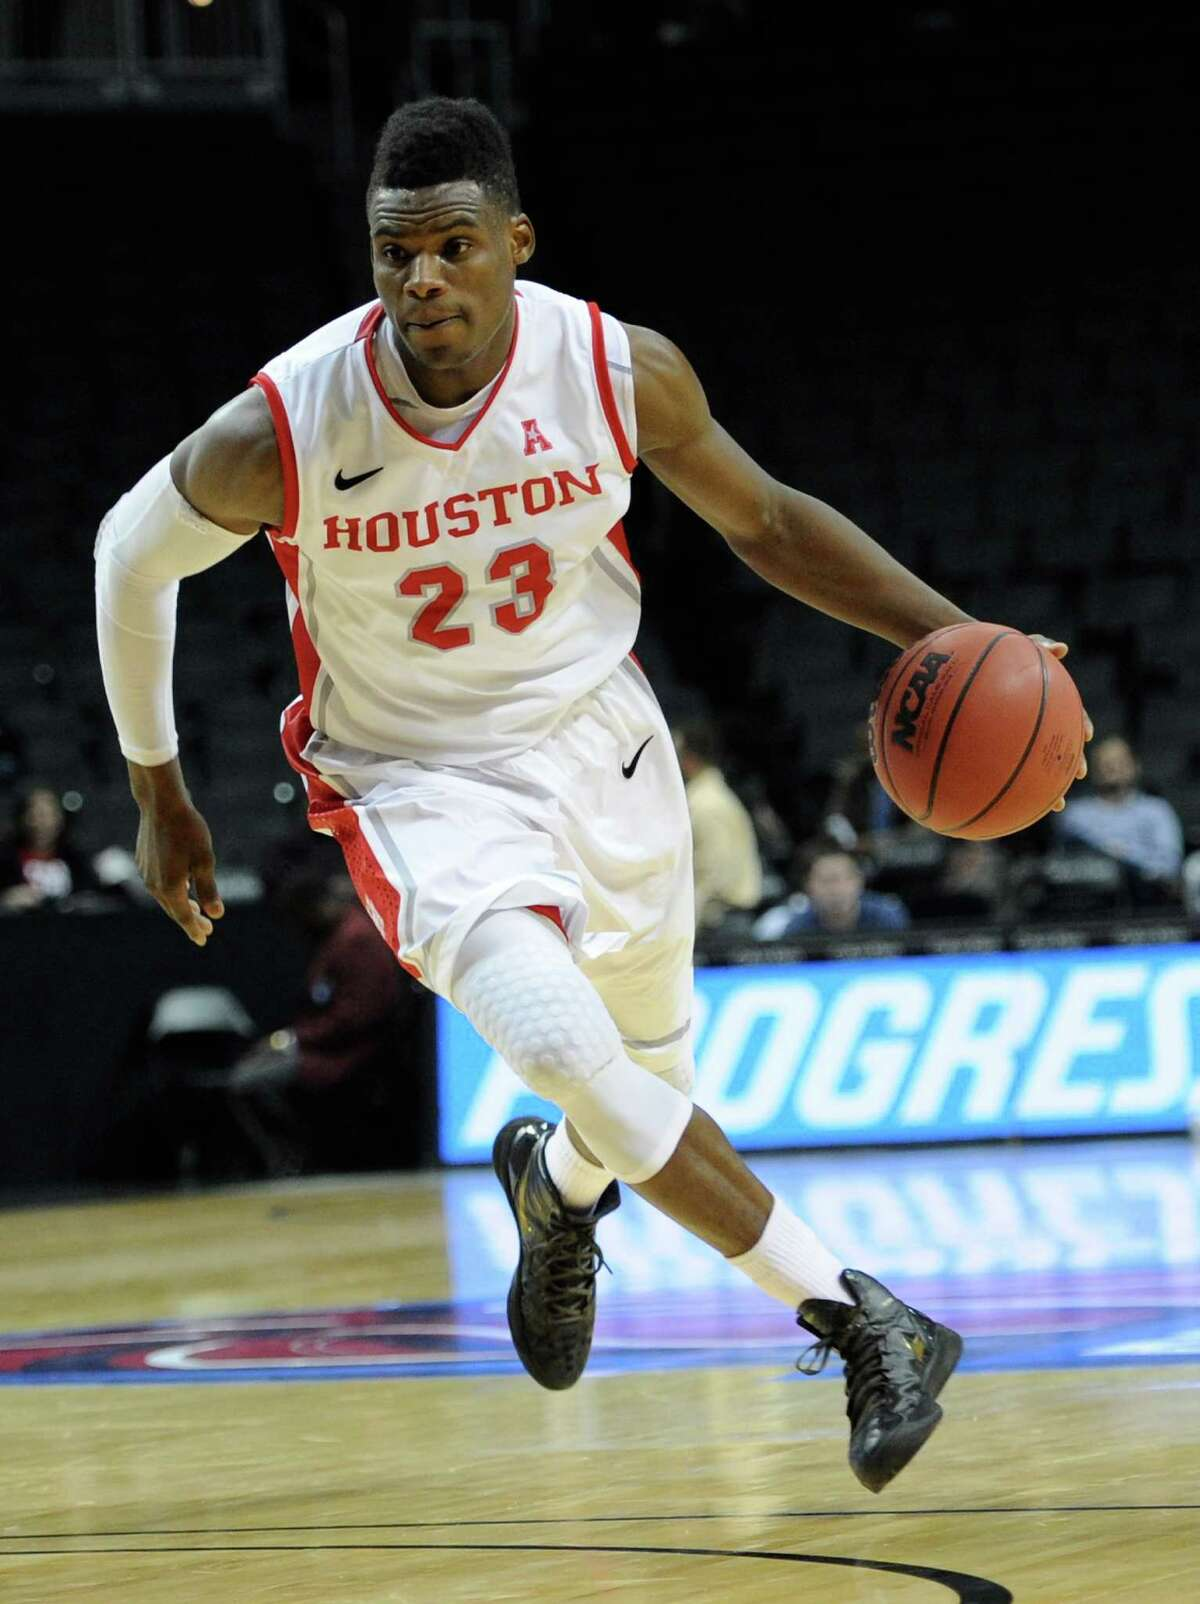 NEW YORK, NY - NOVEMBER 25: Danuel House #23 of the Houston Cougars carries the ball downcourt against the Stanford Cardinals during the second half at Barclays Center on November 25, 2013 in the Brooklyn borough of New York City.